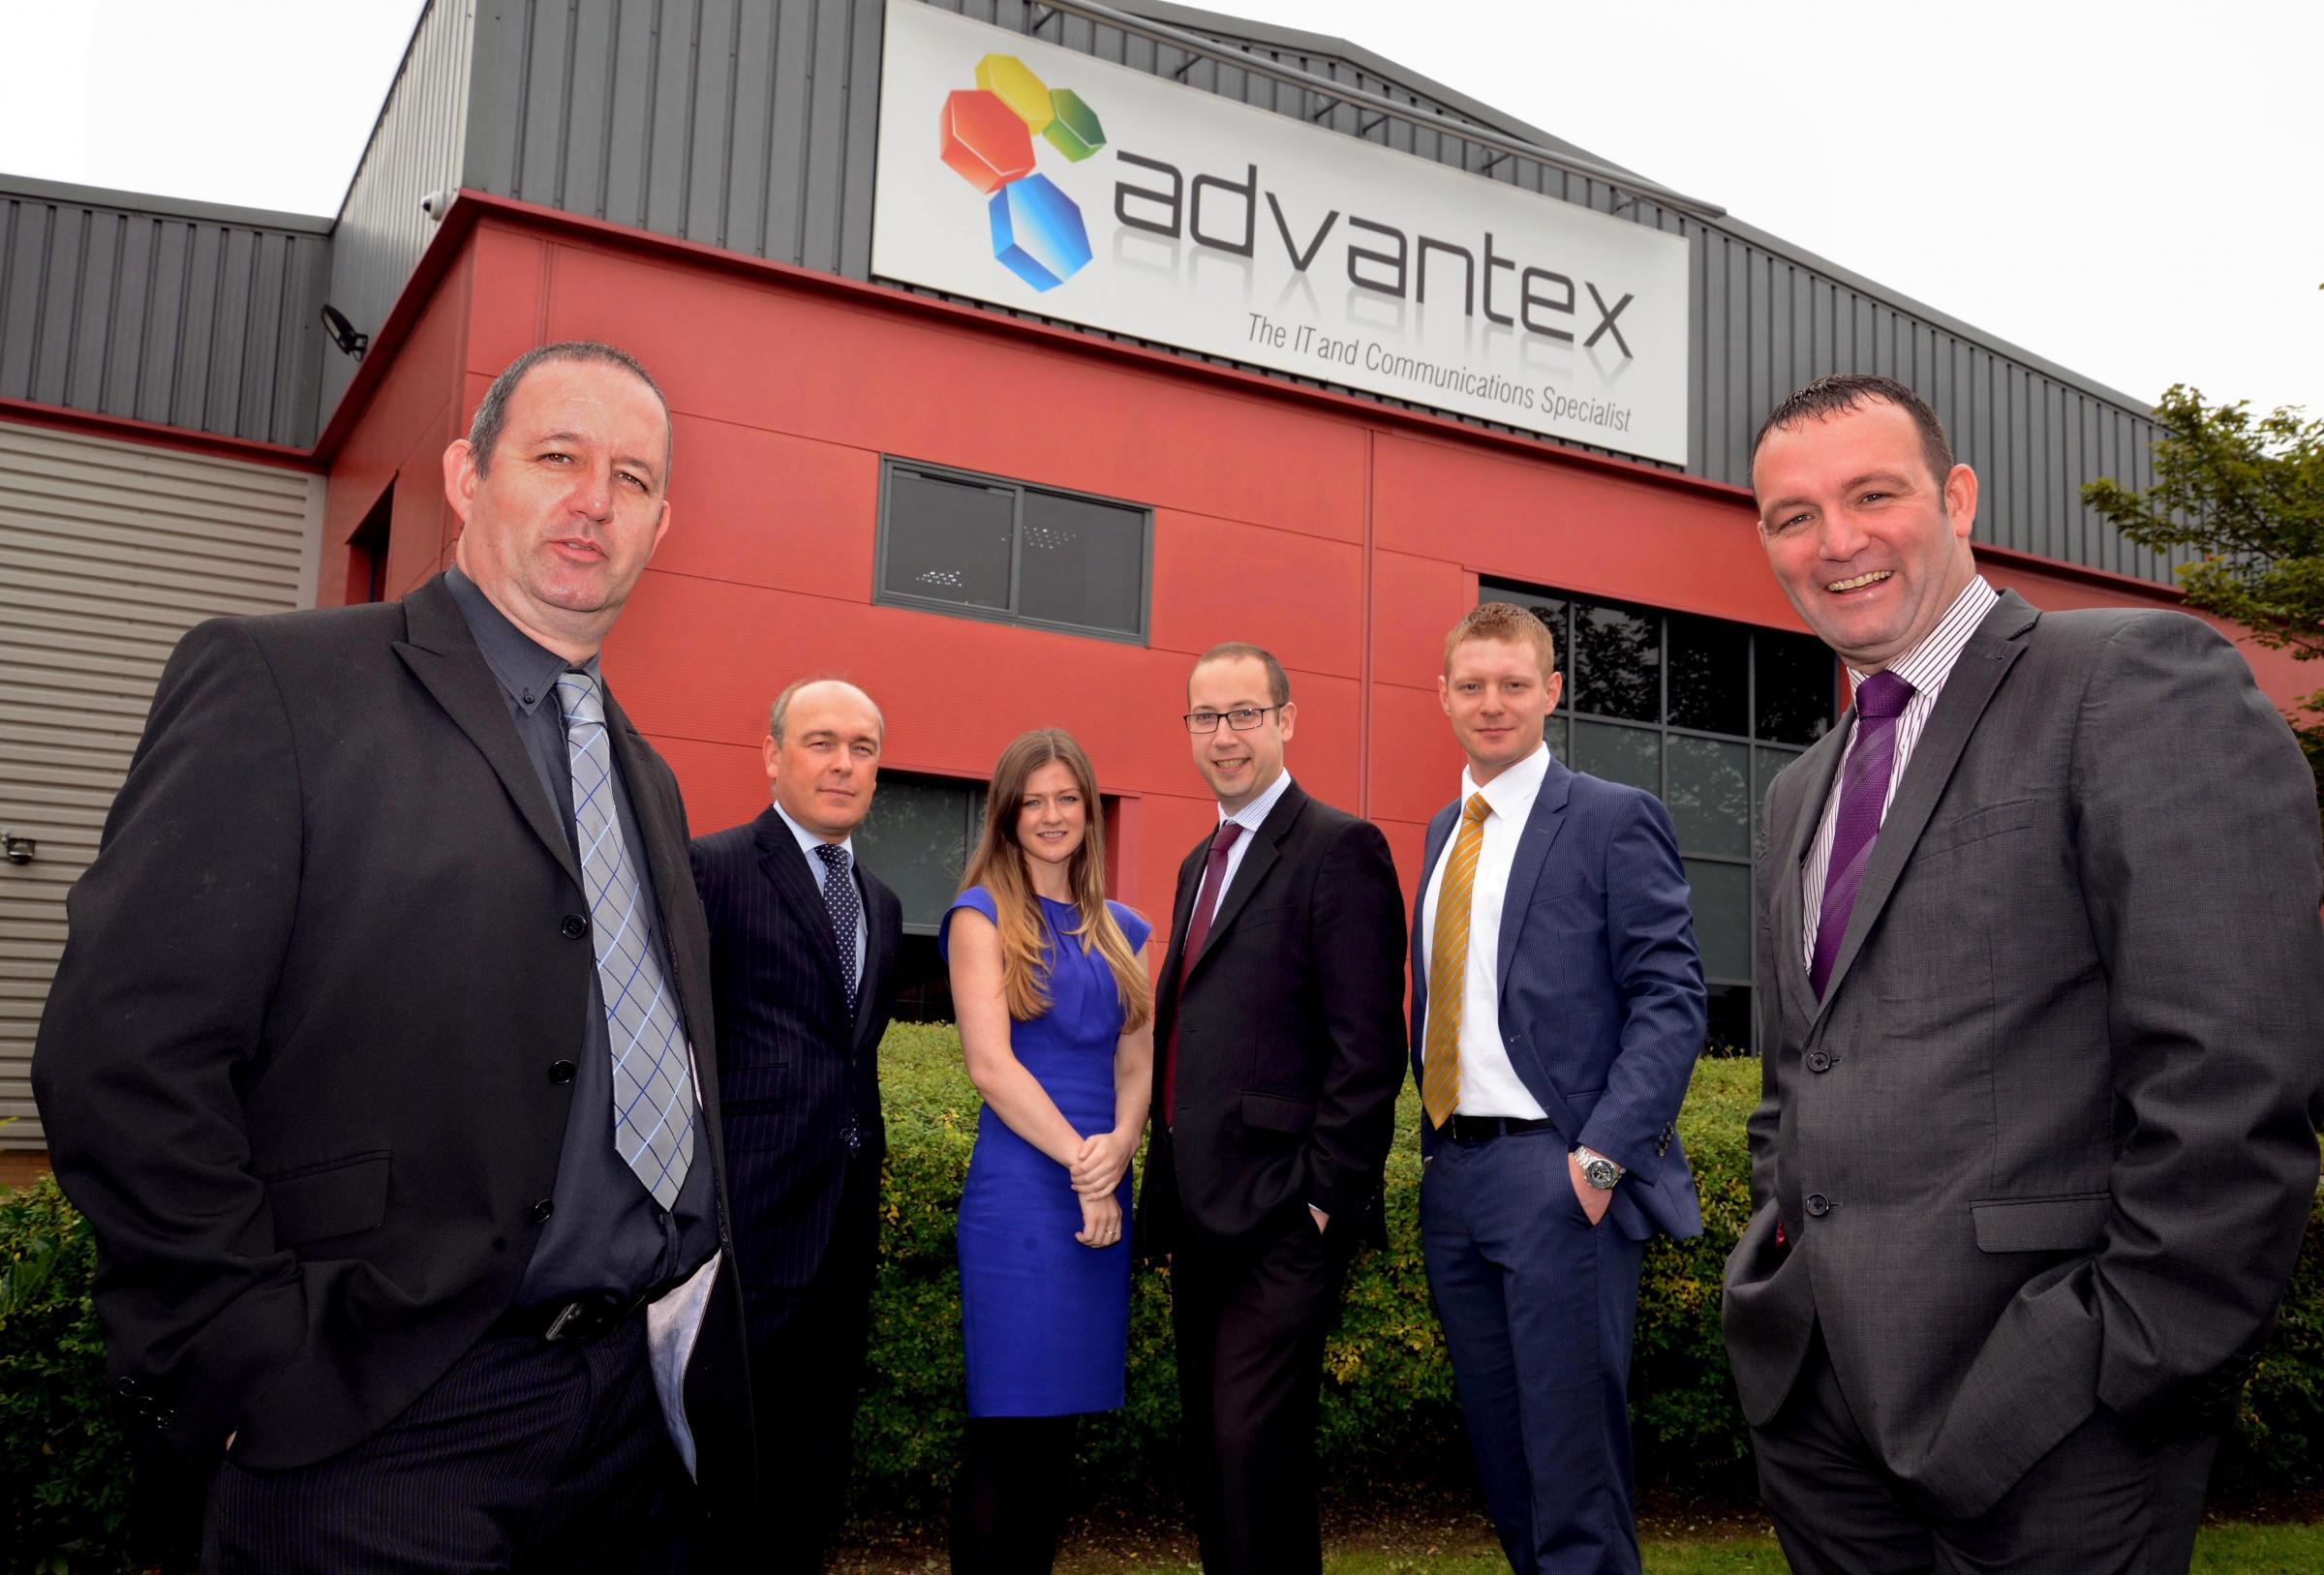 INVESTMENT DELIGHT: Pictured from left to right are David O'Connell, from Advantex, Ward Hadaway's Richard Butts, Esther Wilson, of Rivers Capital Partners, Ben Williamson, of Clive Owen & Co, Nikita Bazko, of Rivers Capital Partners, and Adva